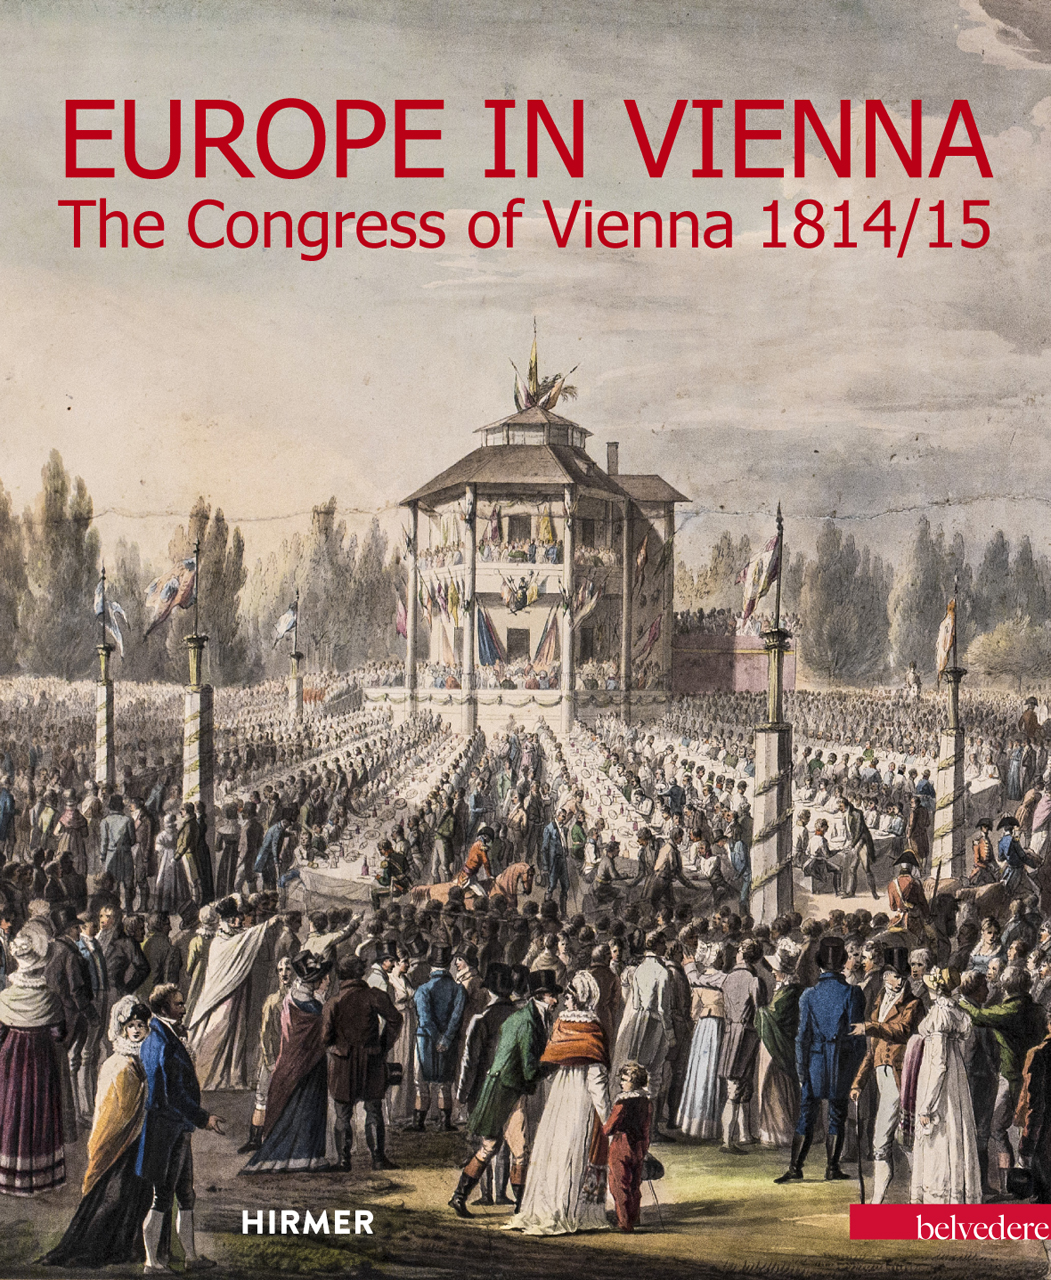 Europe in Vienna: The Congress of Vienna 1814/15